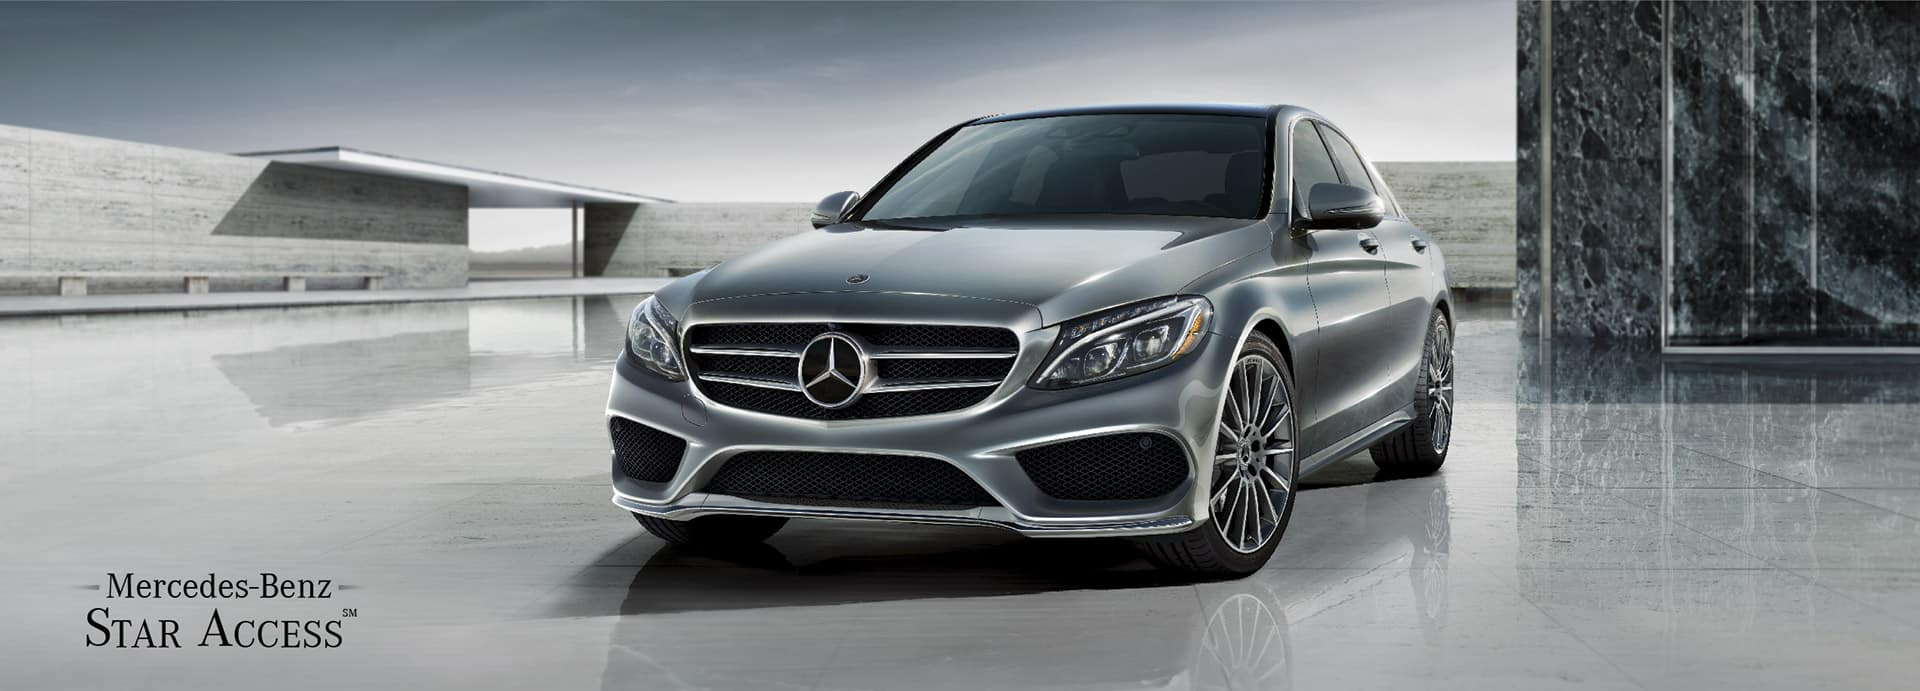 Mercedes-Benz of Austin AMA Star Access